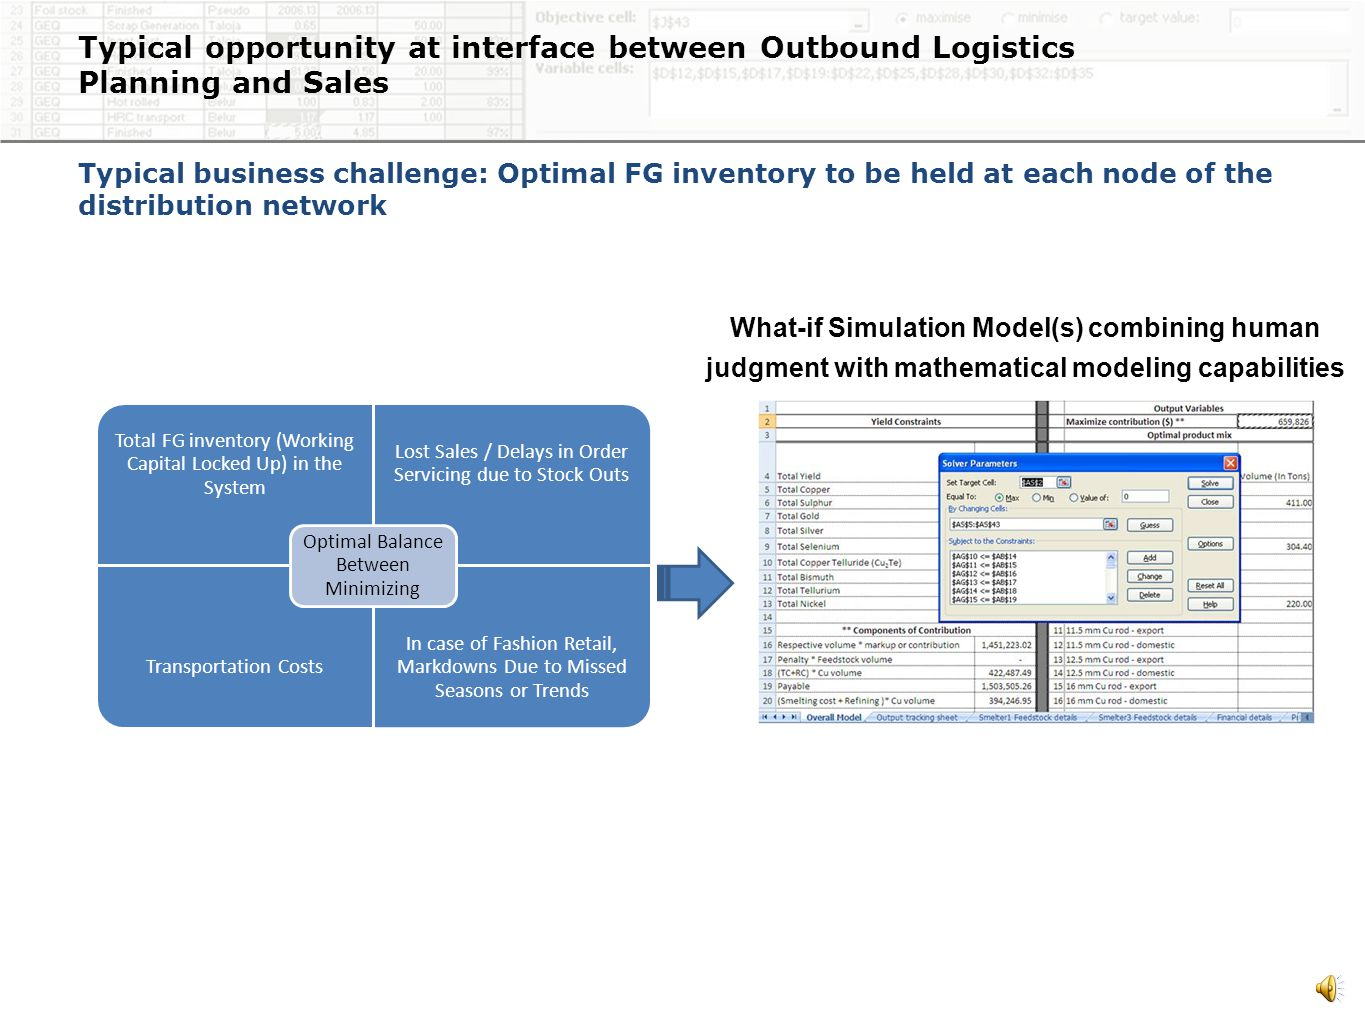 7 Typical opportunity at interface between Sales and Production Typical business challenge: Optimal production run length in the face of demand fluctuations and capacity constraints Phosphates Production Planning Example Generic linear programming model Minimize plant idle capacity Subject to Demand being met Capacity constraints Inventory build up being within norms Based on Capacity requirement of different shared resources (throughputs) of different products